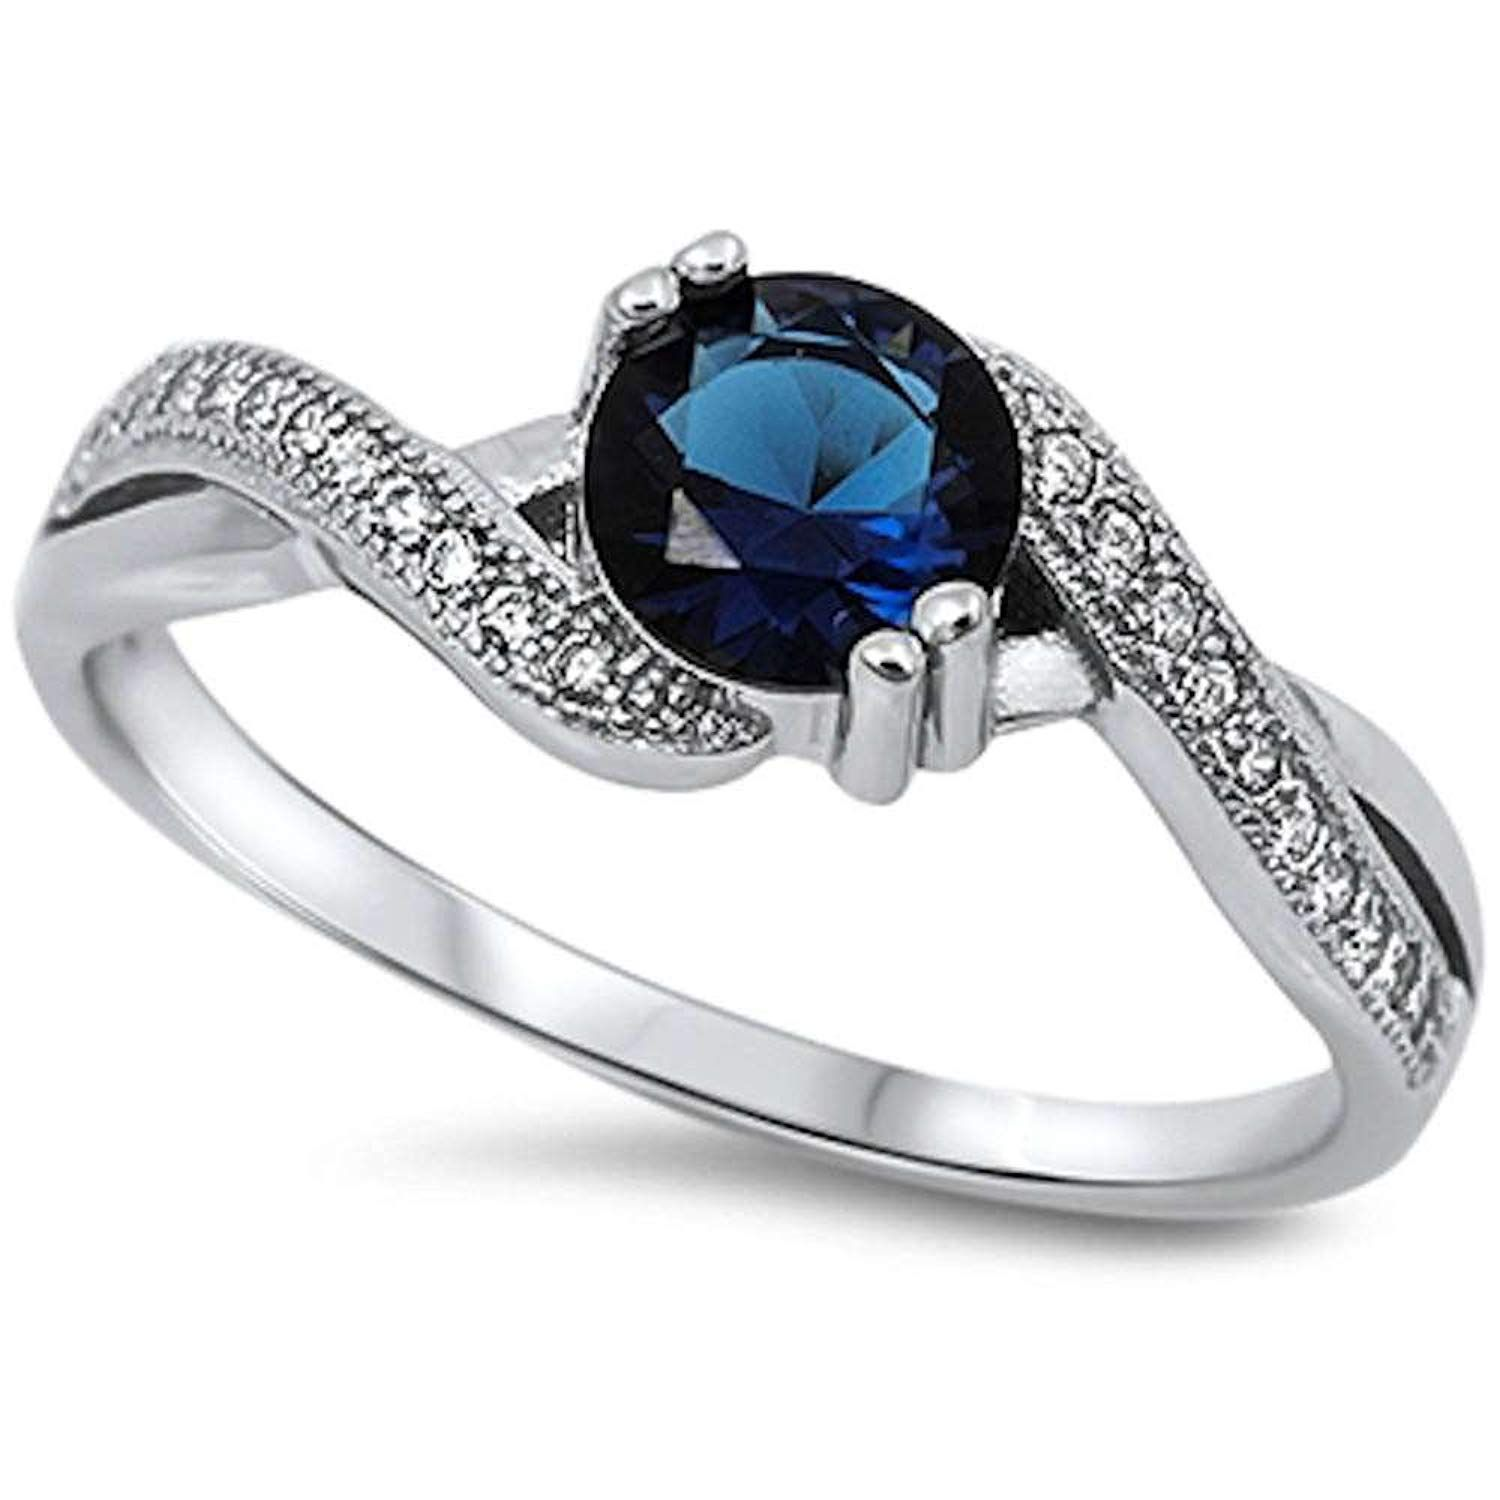 Round Simulated Blue Sapphire and White Cubic Zirconia